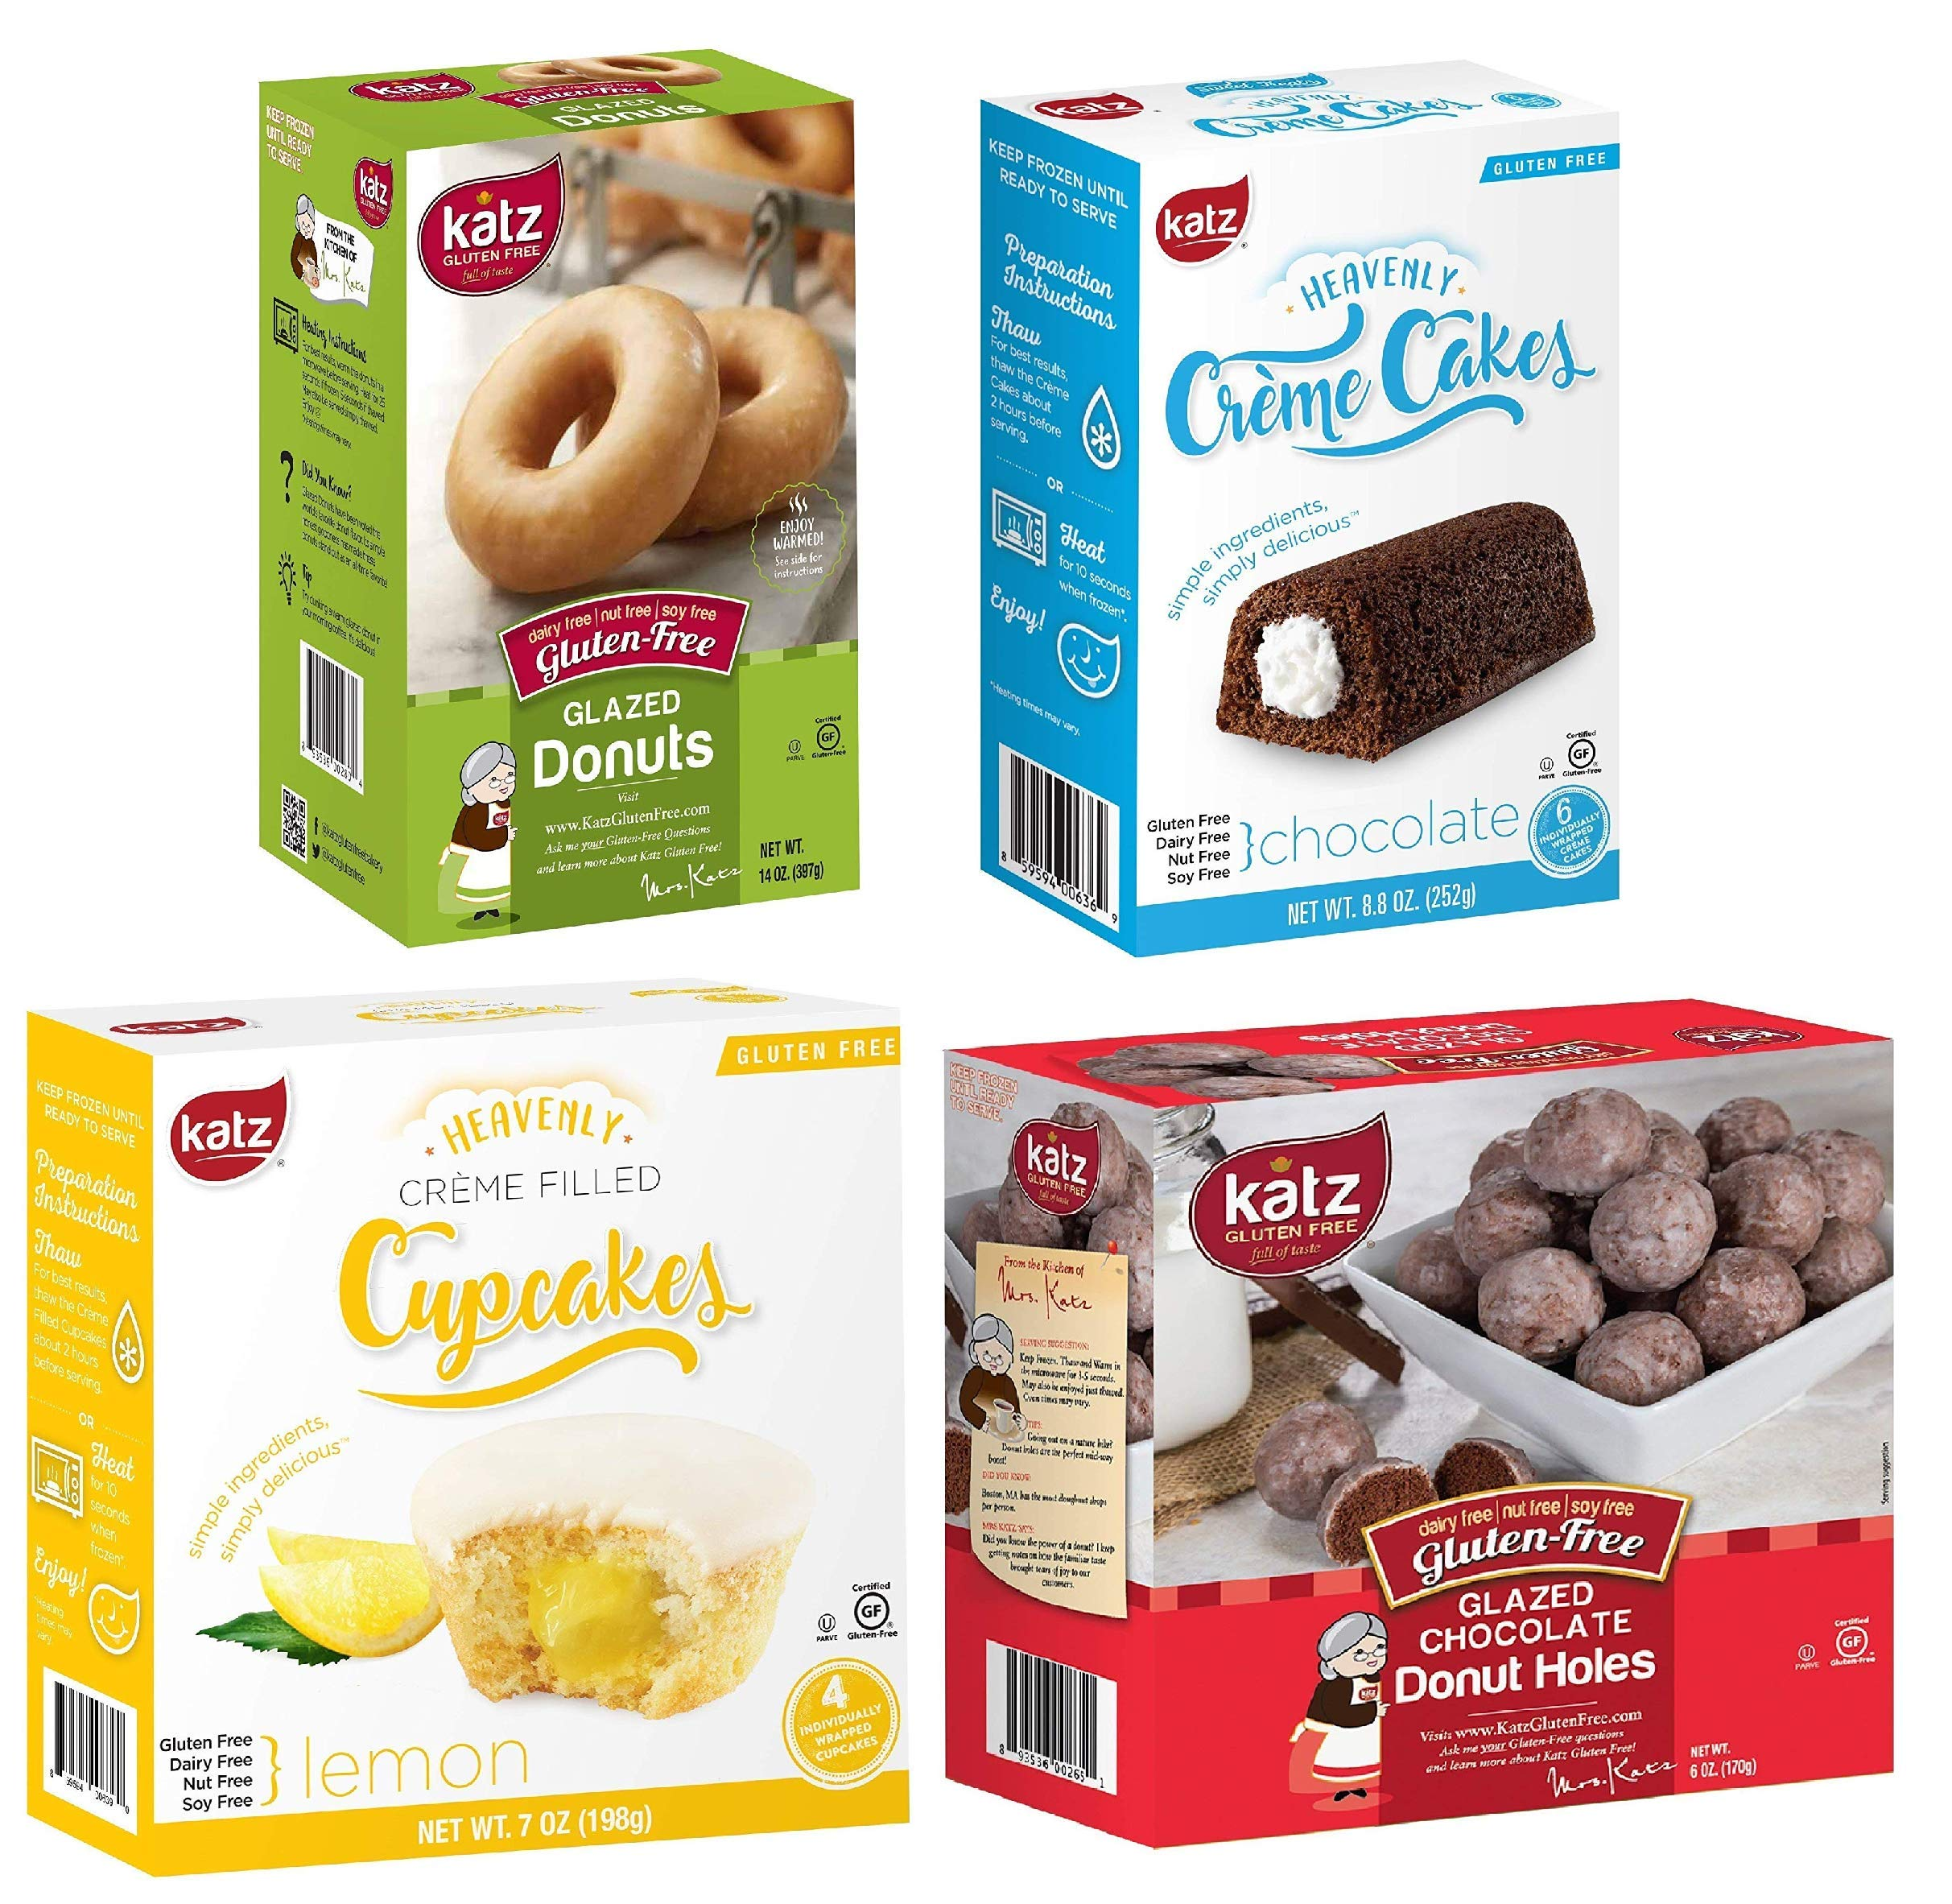 Katz Gluten Free Snacks Top 4 Sellers | Gluten Free, Dairy Free, Soy Free, Nut Free | Glazed Donut, Chocolate Creme Cake, Lemon Creme Cupcake, Glazed Chocolate Donut Holes (1 Pack of each, 4 Total) by Katz Gluten Free